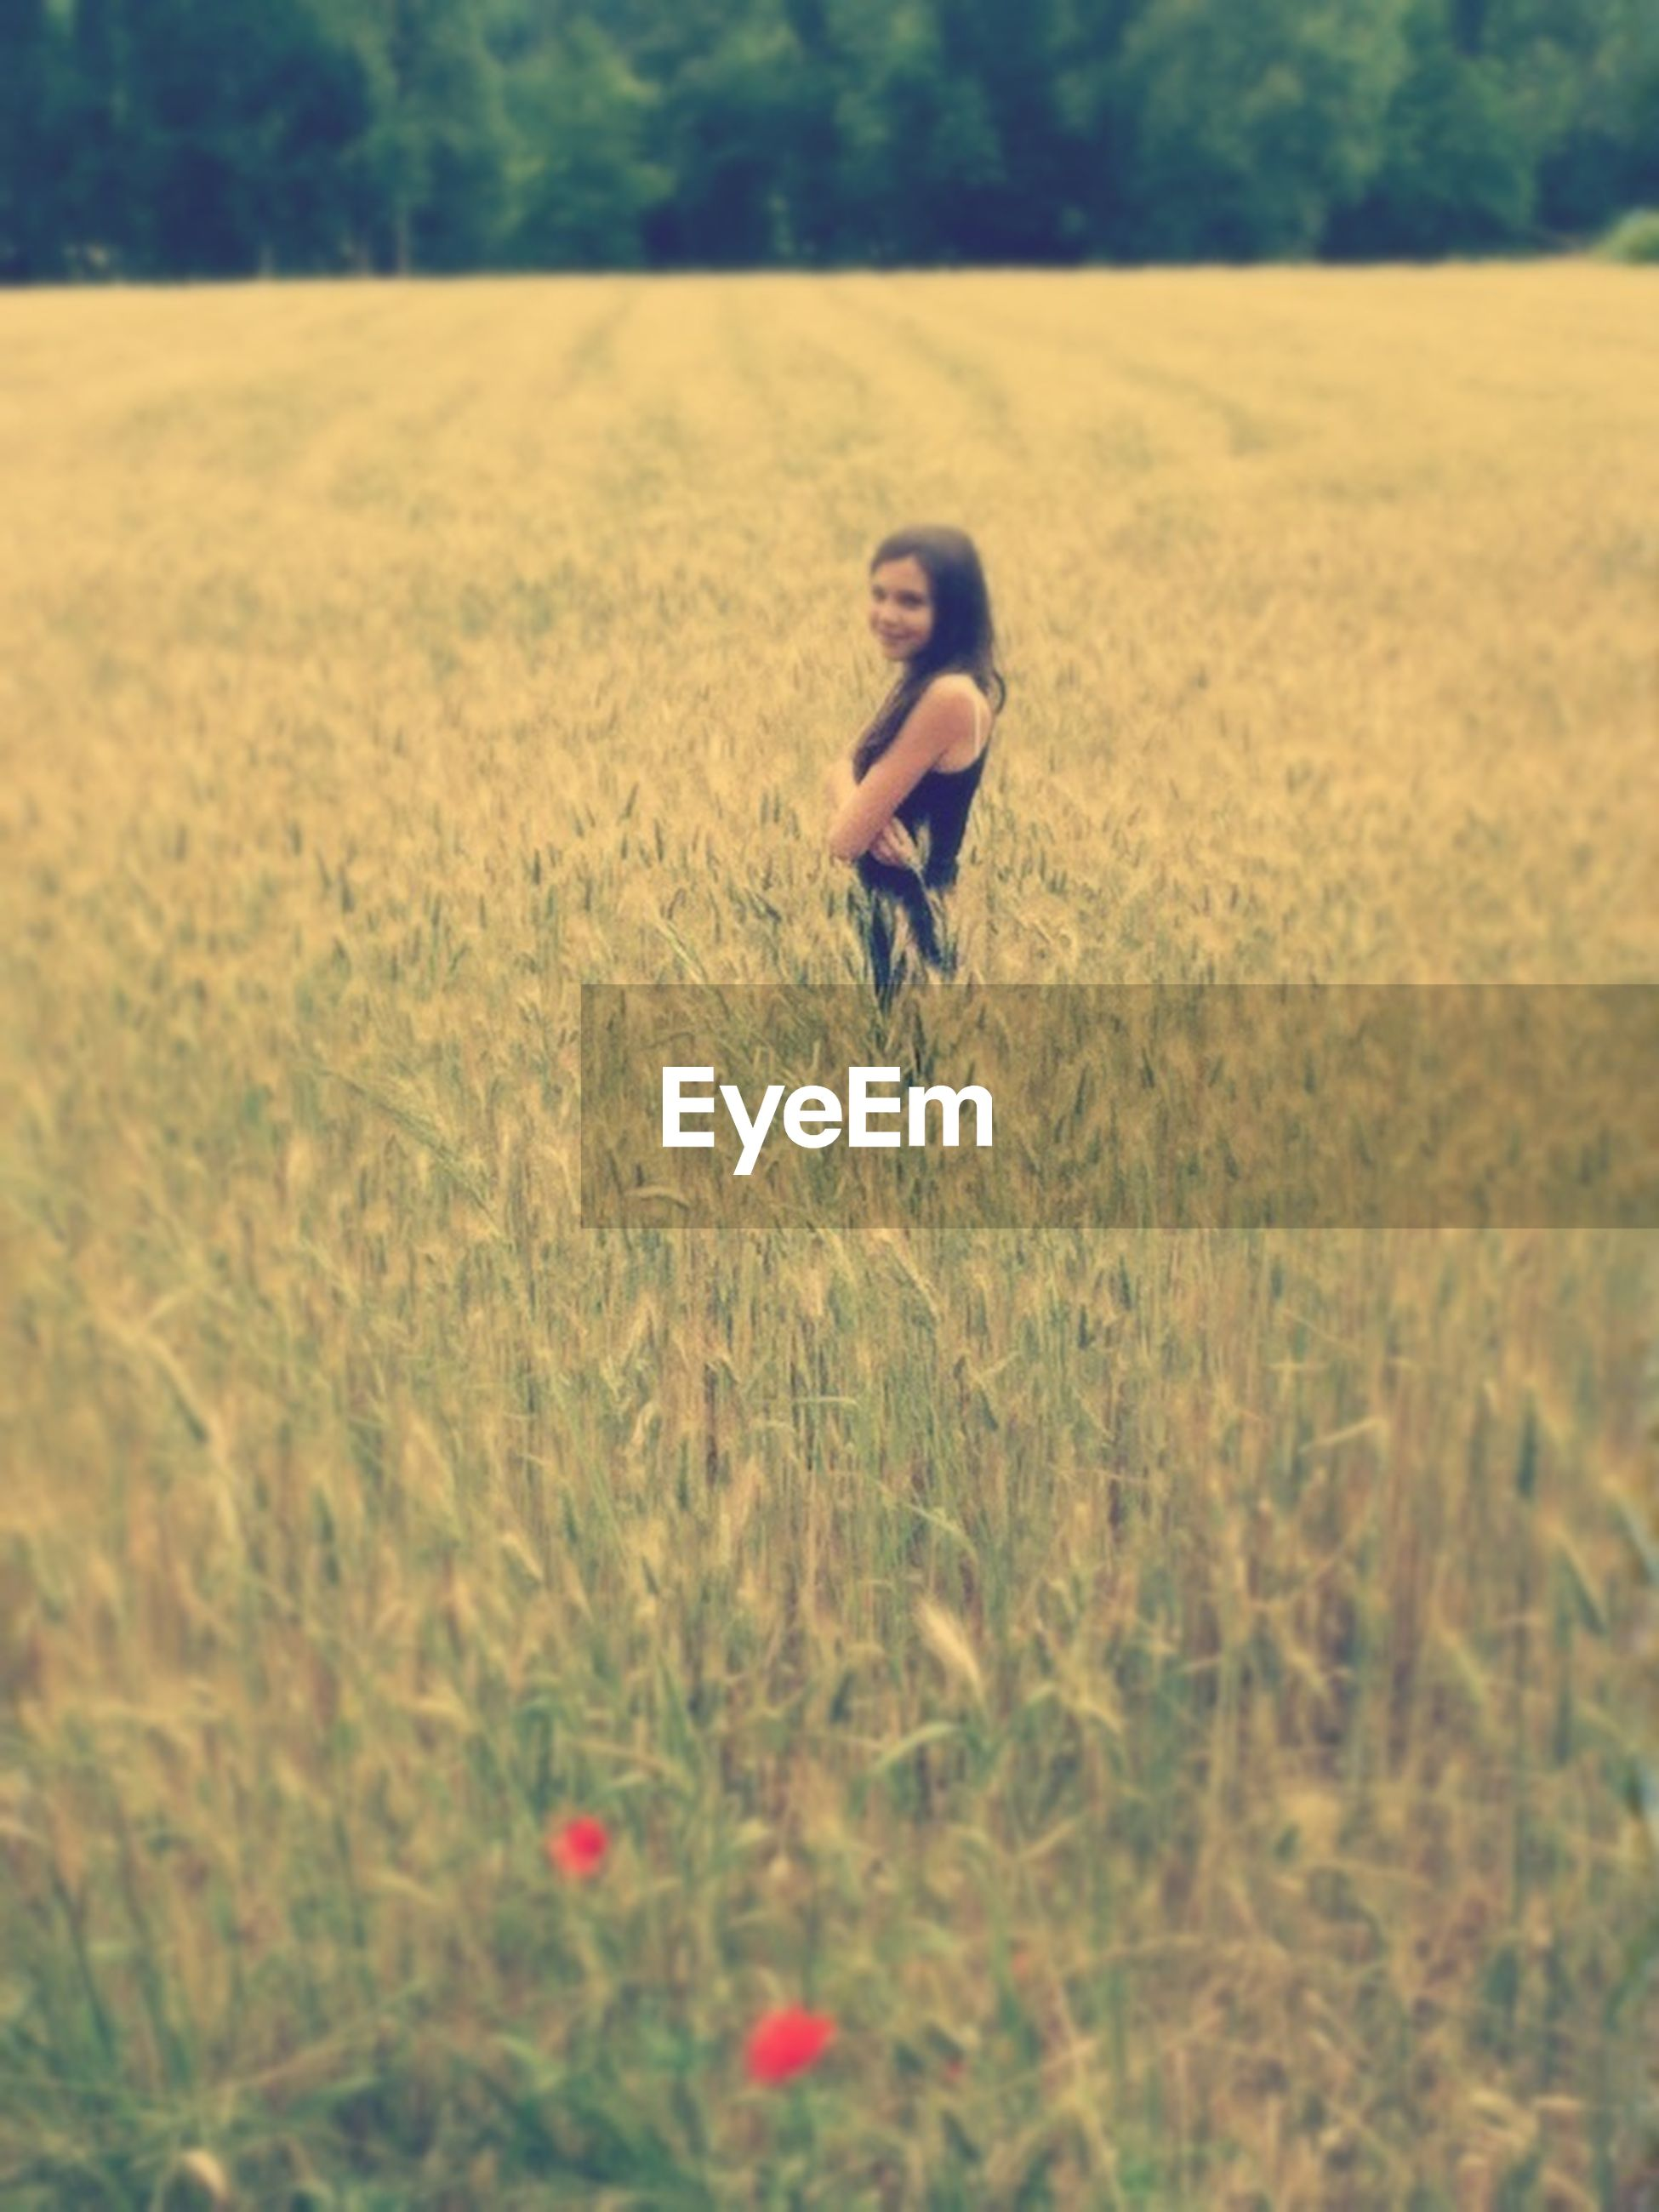 grass, field, lifestyles, leisure activity, full length, focus on foreground, grassy, selective focus, childhood, casual clothing, nature, side view, outdoors, mid-air, plant, day, person, growth